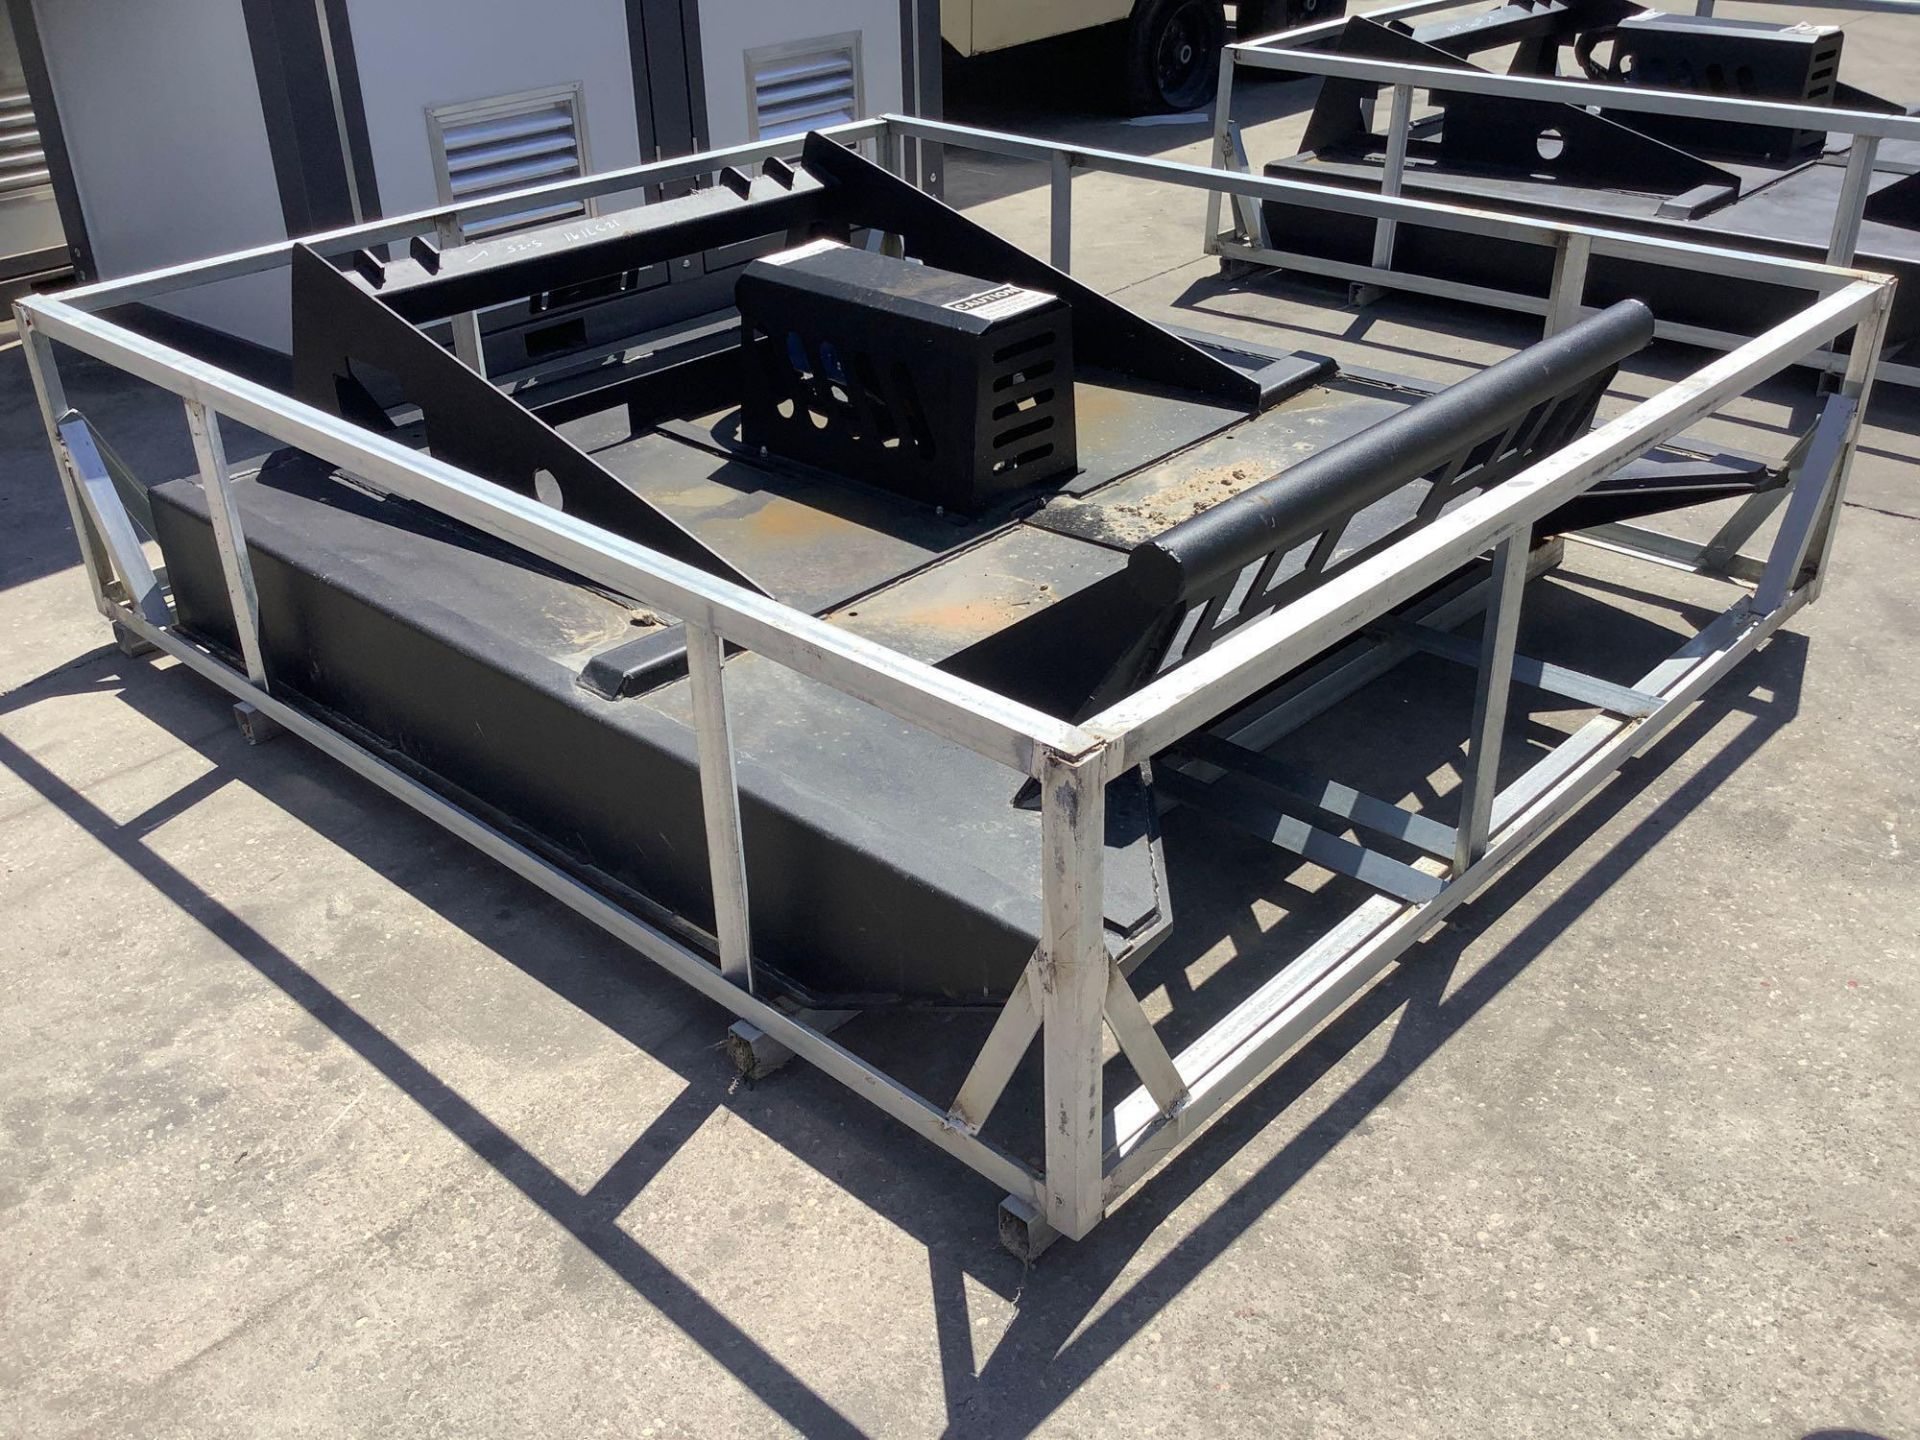 UNUSED BRUSH CUTTER ATTACHMENT FOR SKID STEER APPROX 77IN LONG x 70IN WIDE - Image 3 of 5